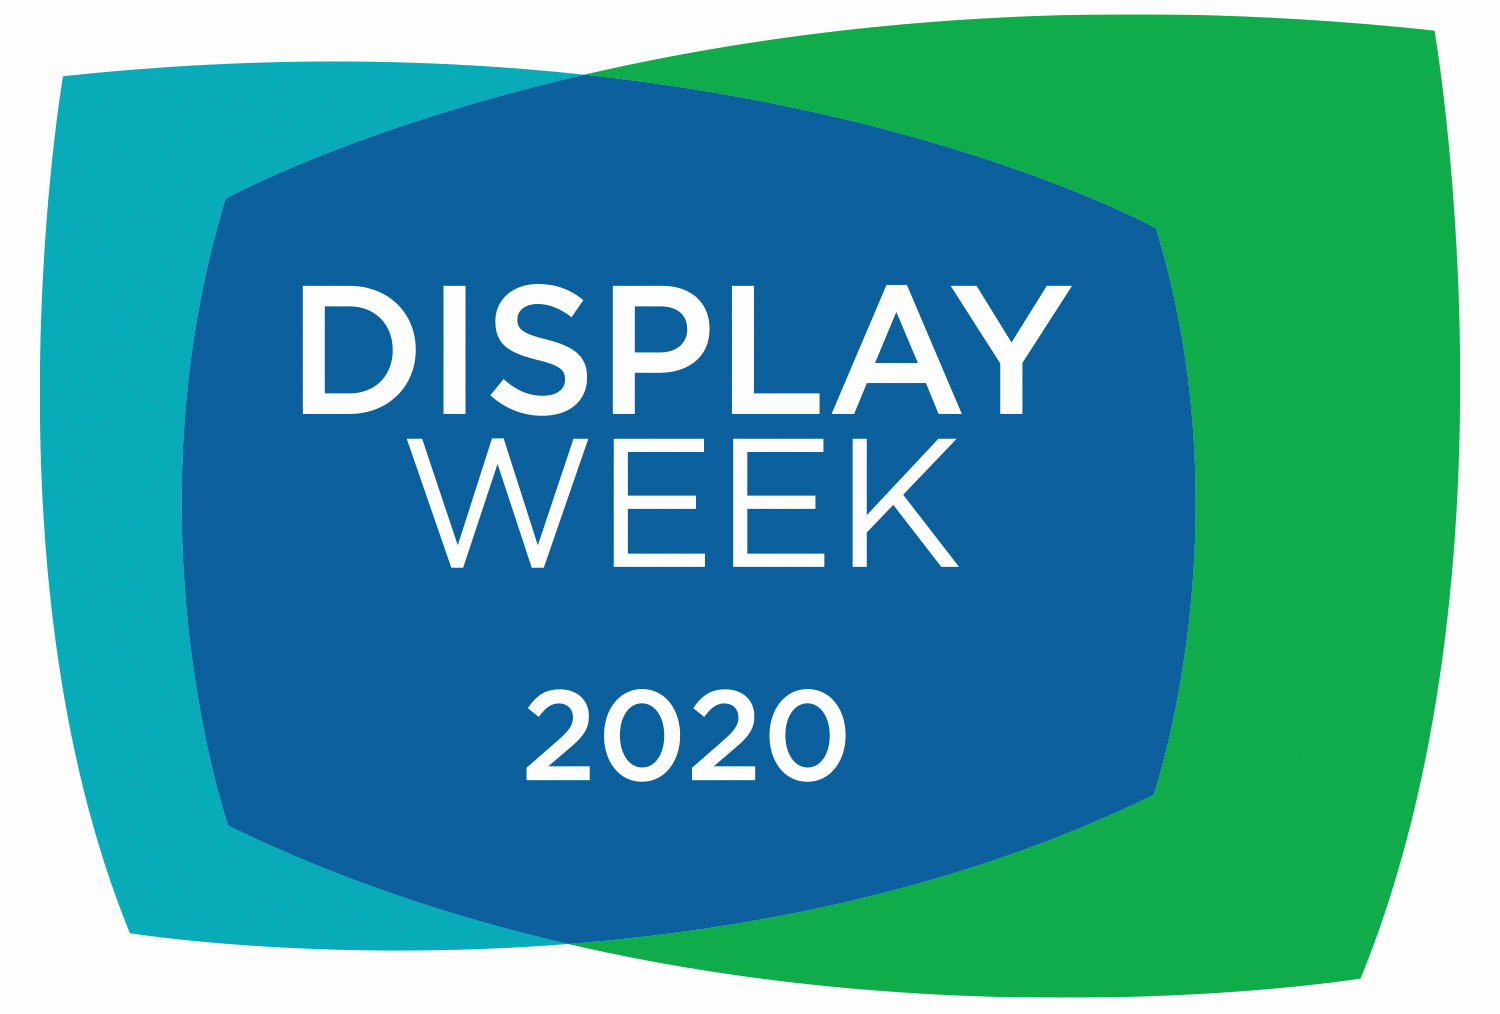 Will you be going to Display week? article image